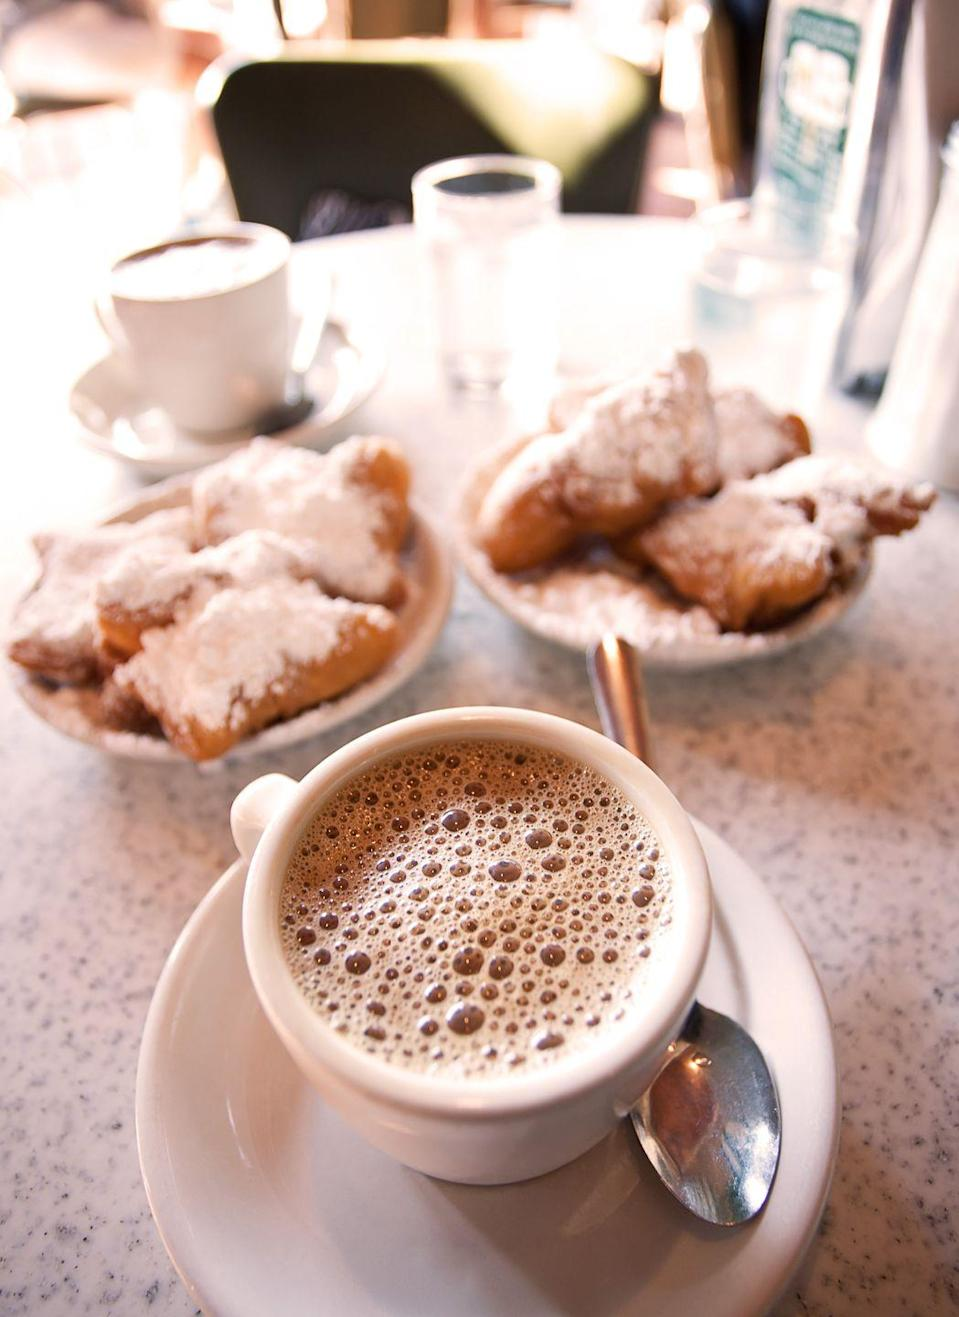 "<p>Music may be the food of love, but who says you can't have both great music and great food? That's what you'll find down in New Orleans. Treat your loved one to a concert at a local jazz club and eat beignets to your heart's content. </p><p><a class=""link rapid-noclick-resp"" href=""https://go.redirectingat.com?id=74968X1596630&url=https%3A%2F%2Fwww.tripadvisor.com%2FTourism-g60864-New_Orleans_Louisiana-Vacations.html&sref=https%3A%2F%2Fwww.redbookmag.com%2Flife%2Fg35212951%2Fromantic-weekend-getaways%2F"" rel=""nofollow noopener"" target=""_blank"" data-ylk=""slk:PLAN YOUR TRIP"">PLAN YOUR TRIP</a></p>"